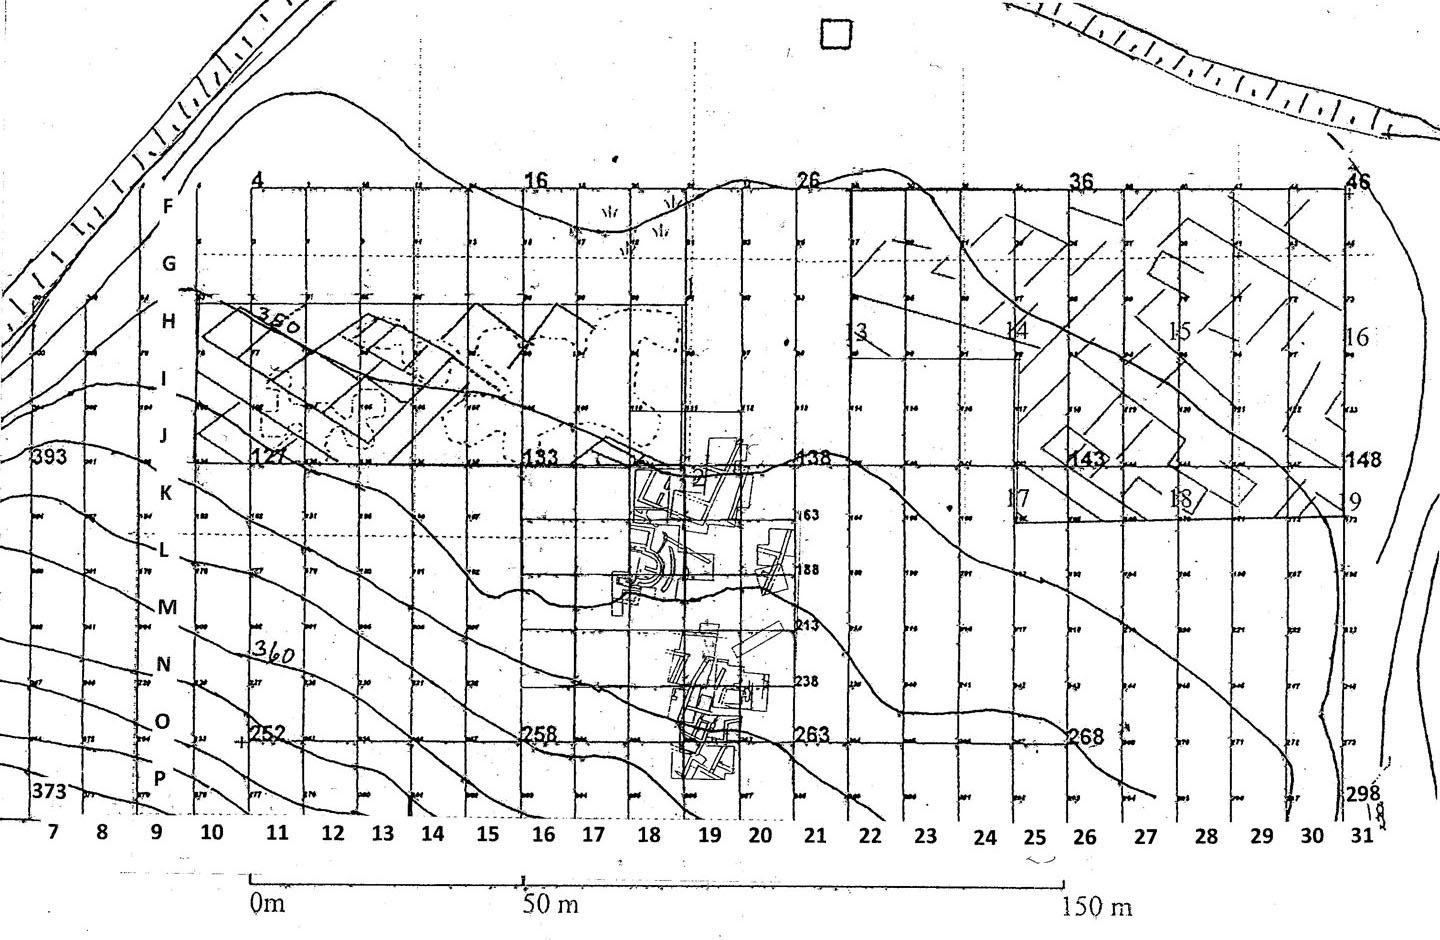 Fig. 2: Plan showing the excavated areas on the terrace and the results of geophysical scanning (Snively 2009–2010)